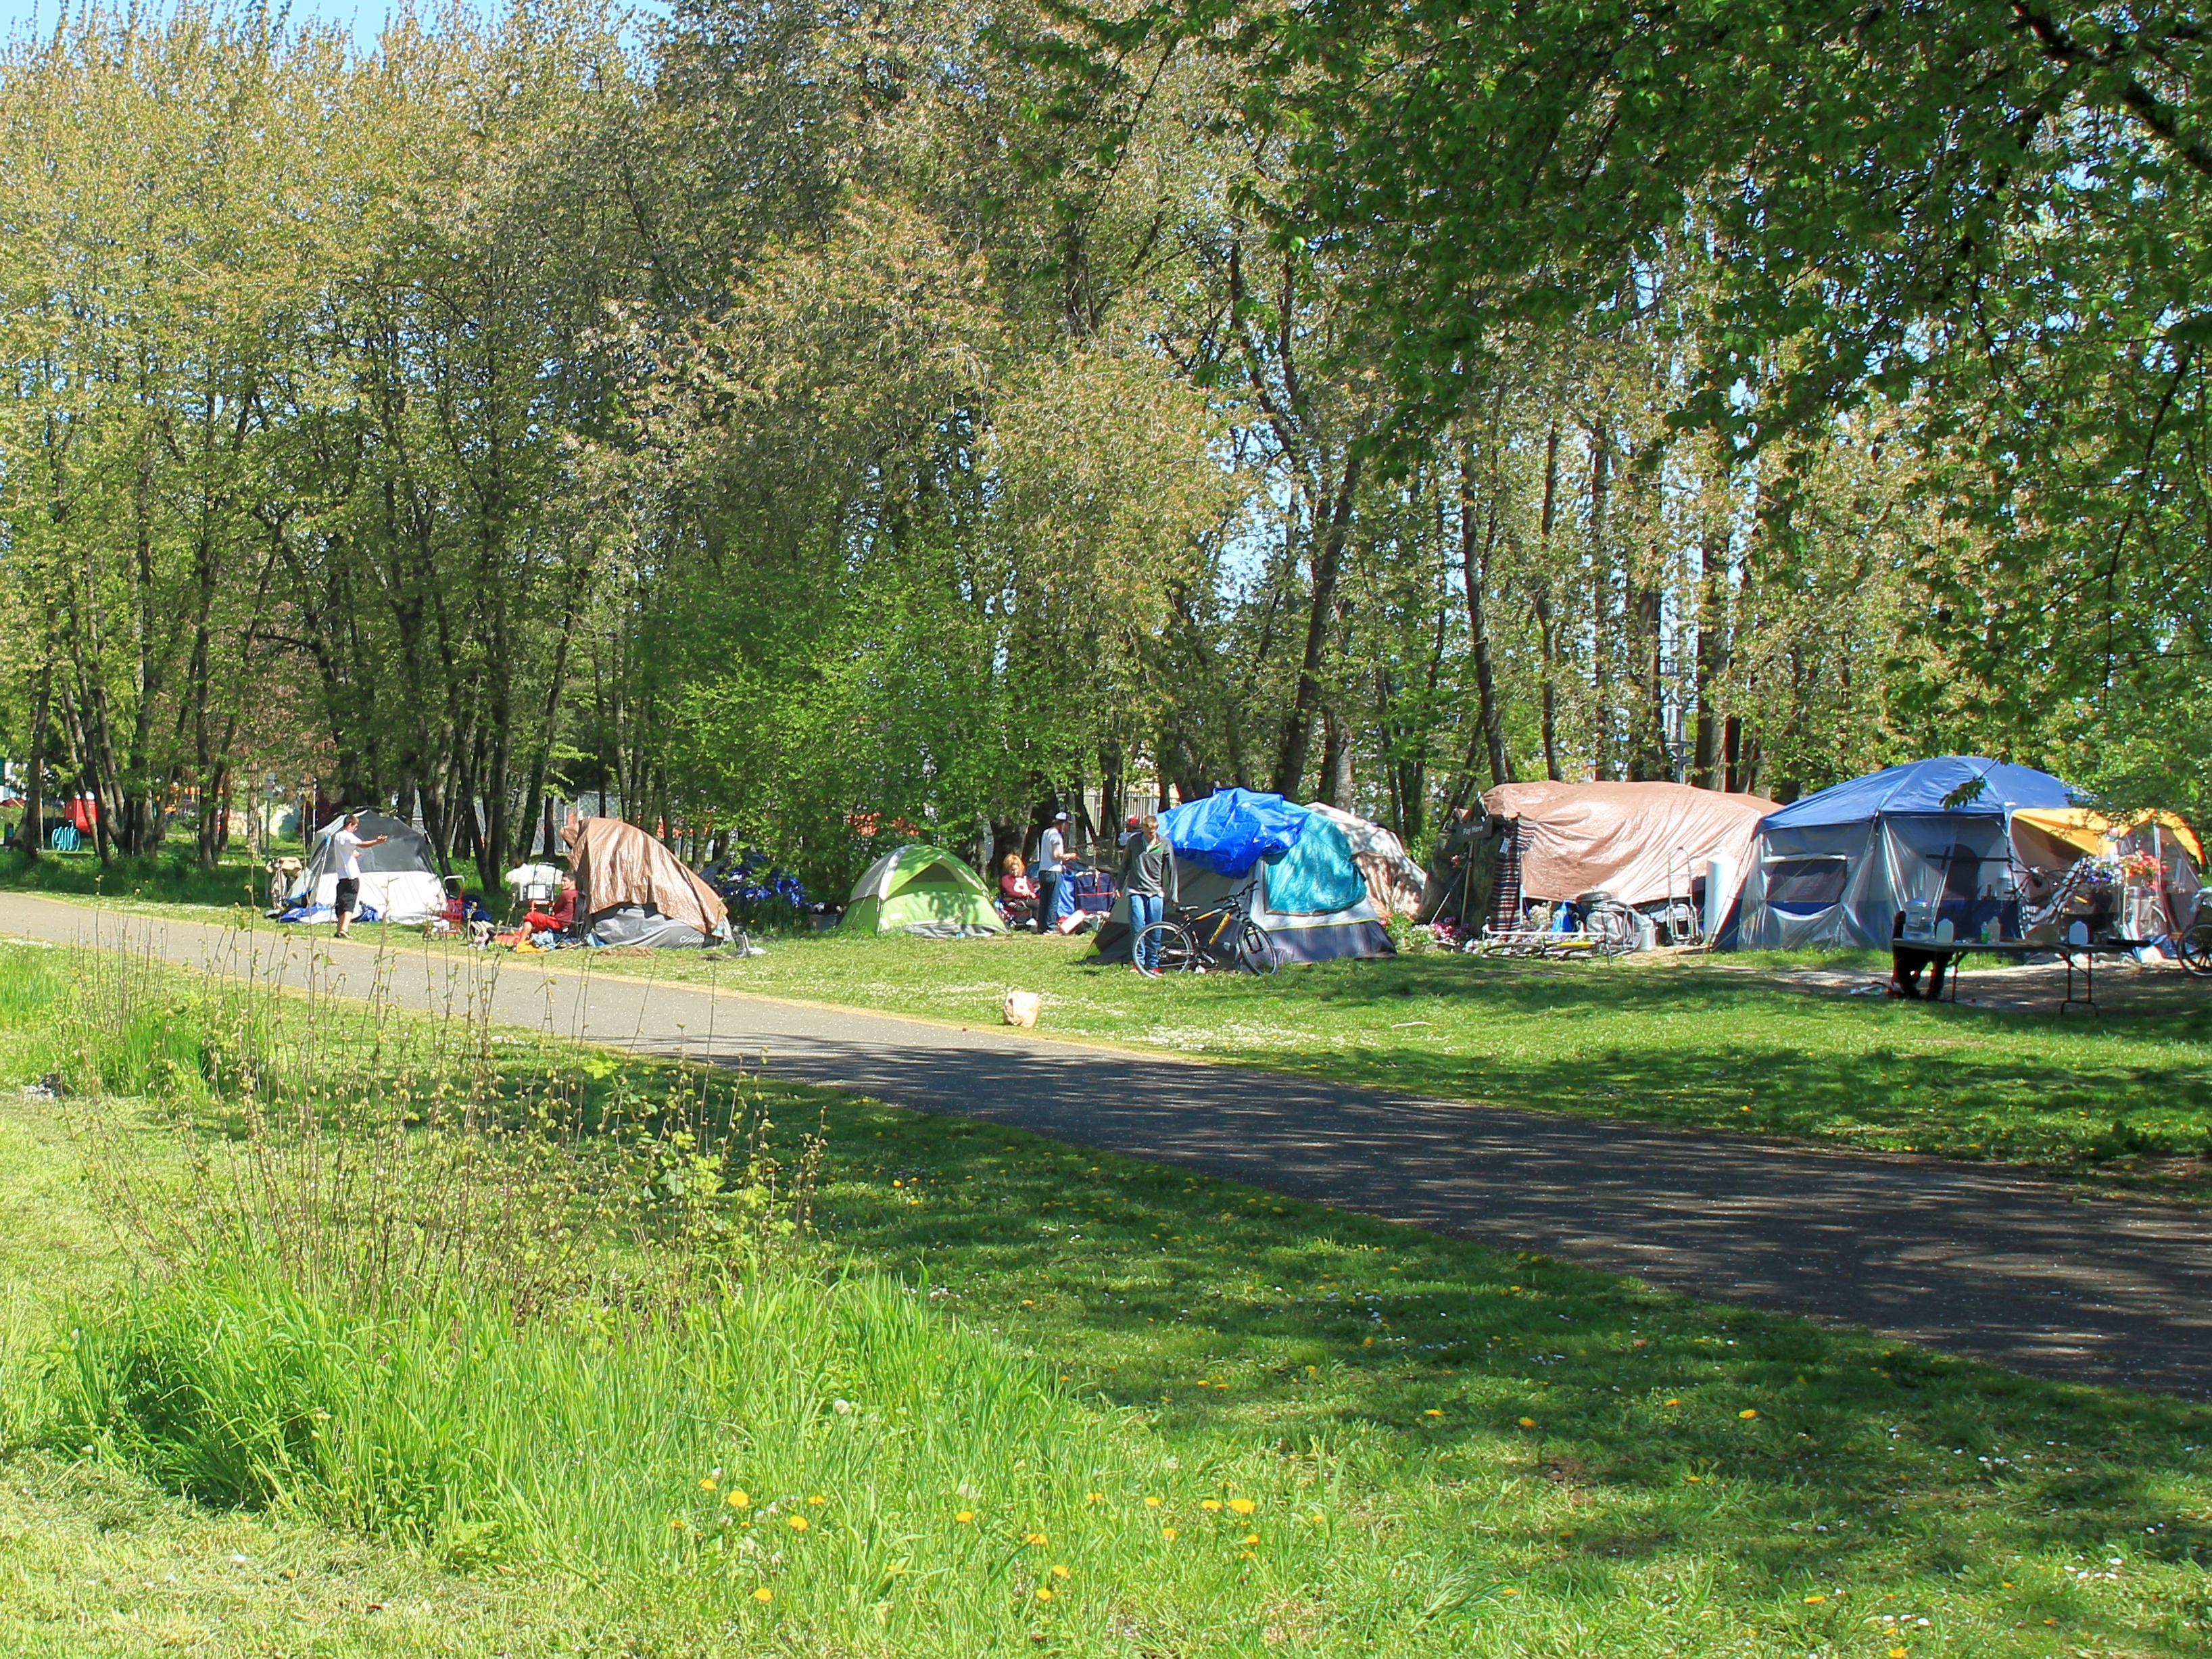 File:North Portland homeless tent camp.jpg